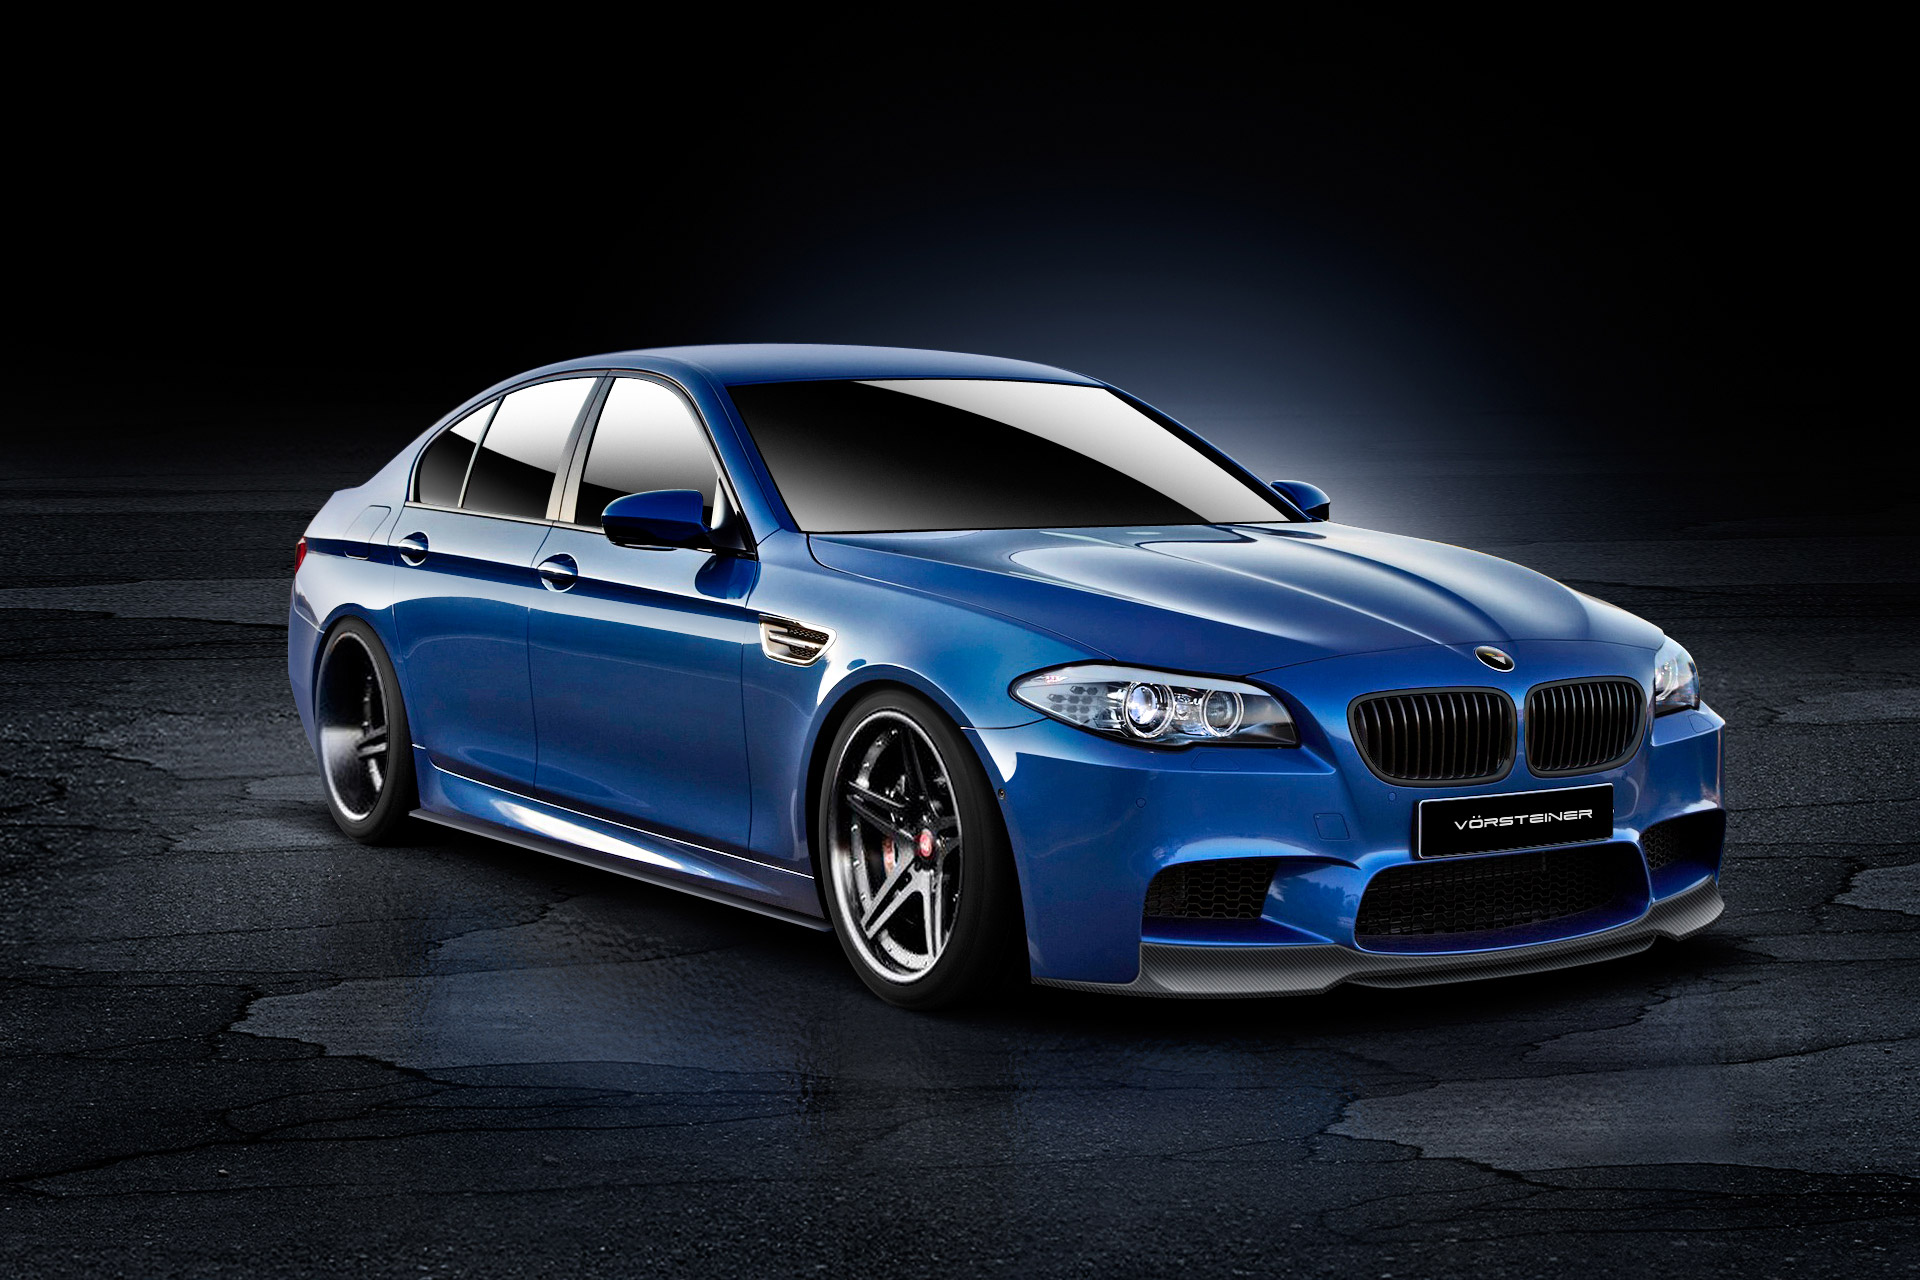 2013 Vorsteiner Bmw M5 Sedan Tuning Wallpaper 1920x1280